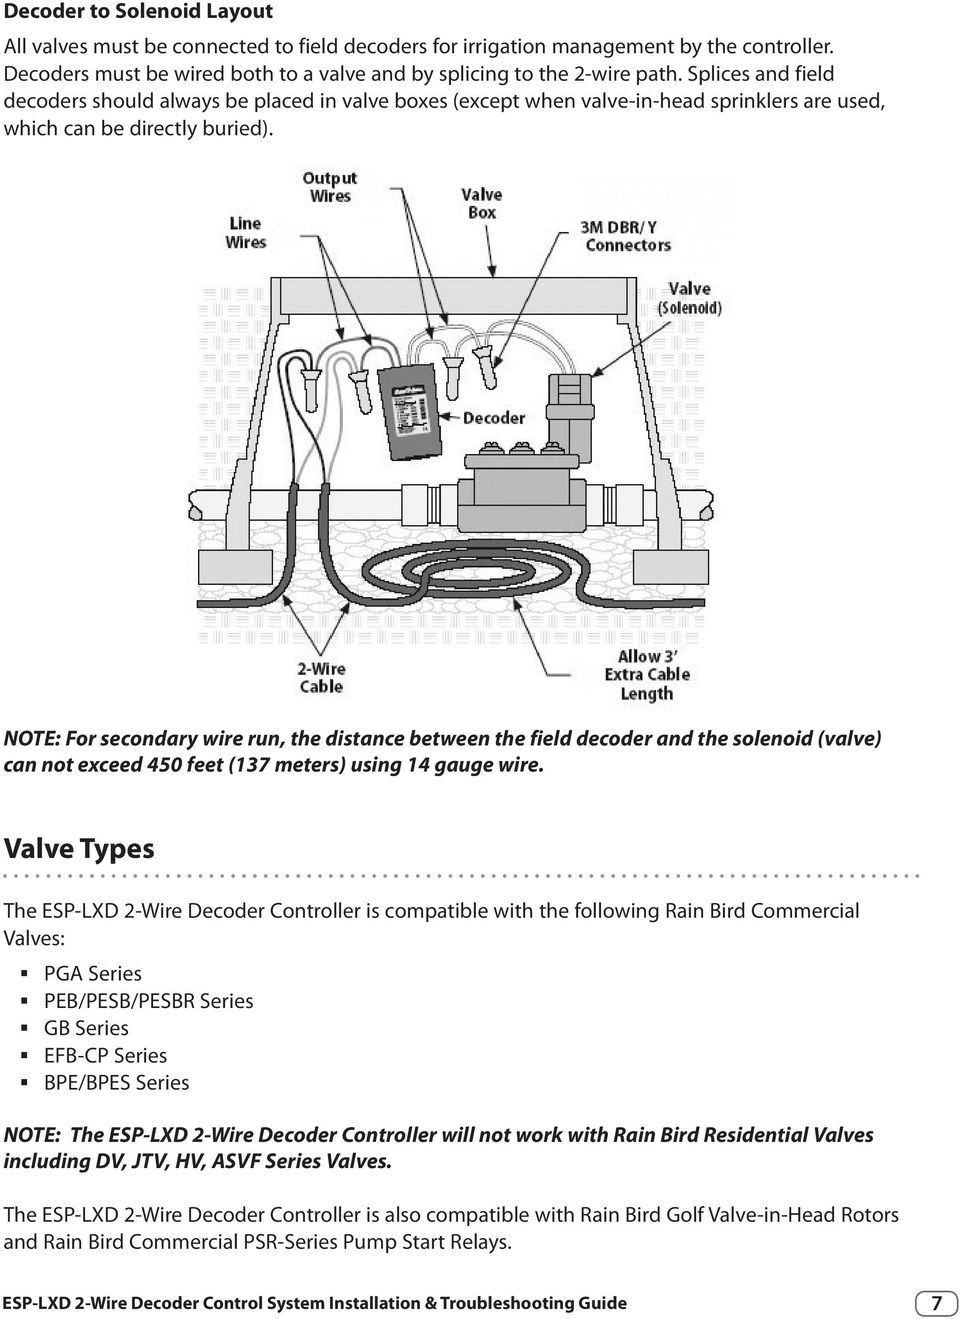 Line Surge Protector And Field Decoder Wiring Connection To Valve